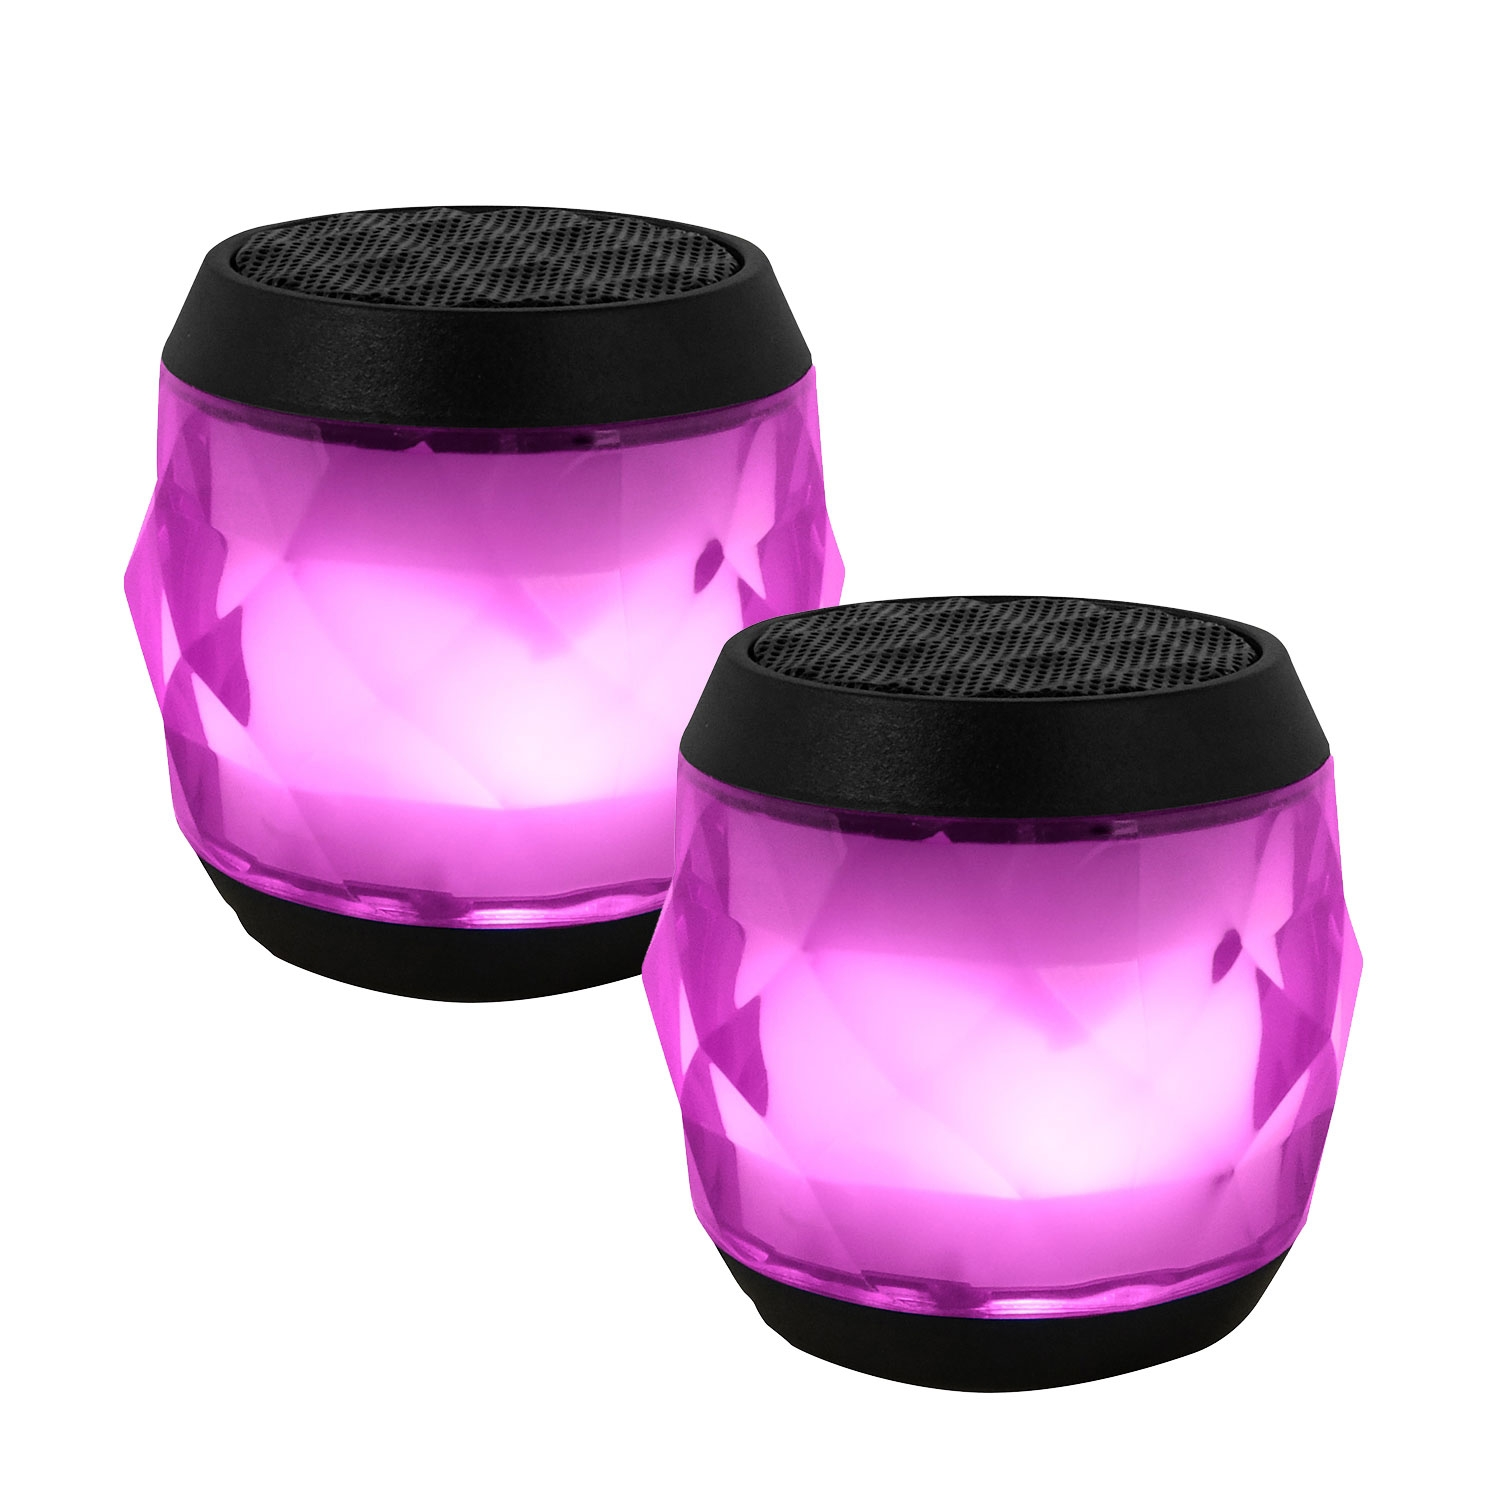 EvoDX BT 4.0 Speaker LED Multi-colour with TWS Feature and Handsfree Mic - Pink - Value Twin Pack